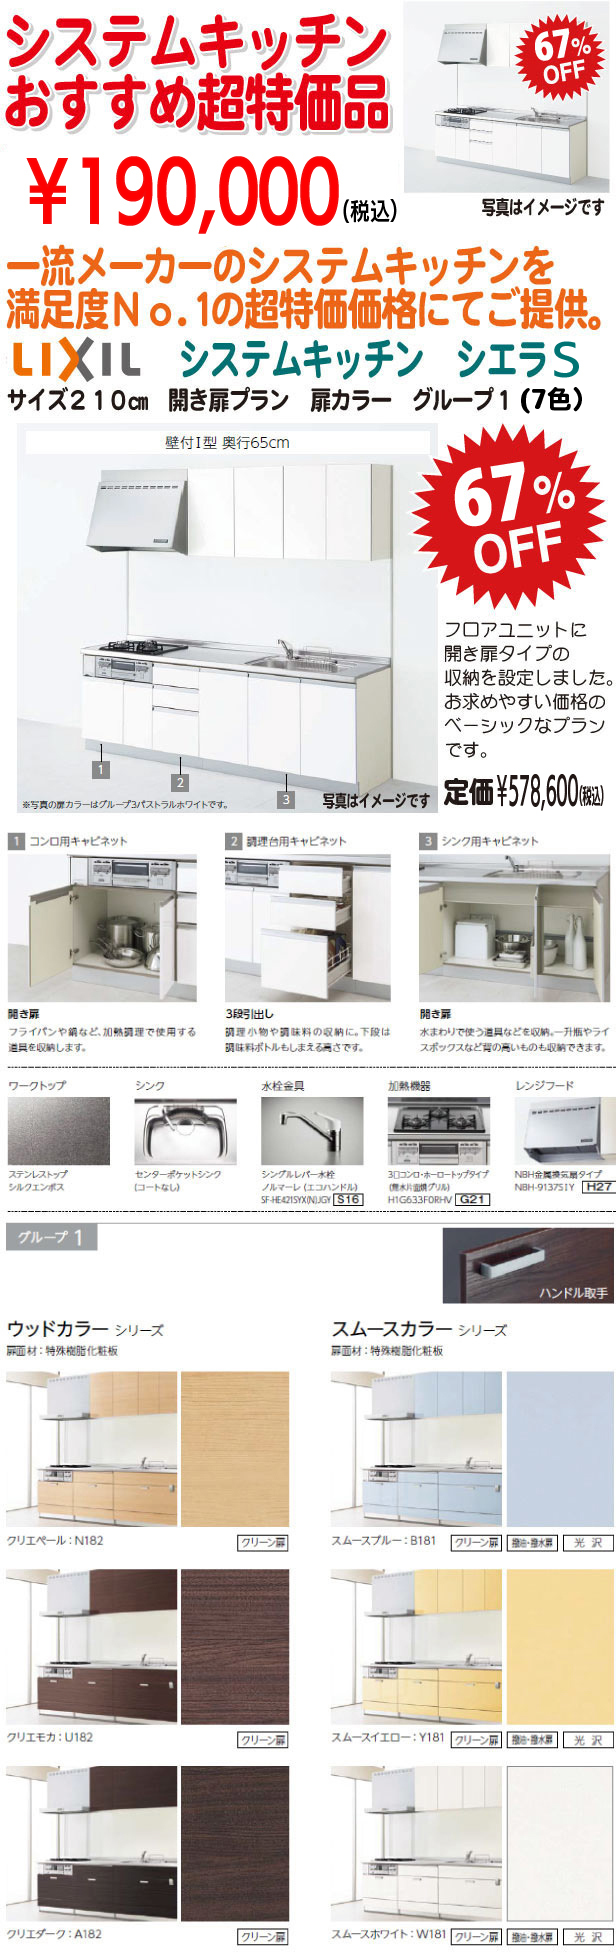 kitchen0-101.png